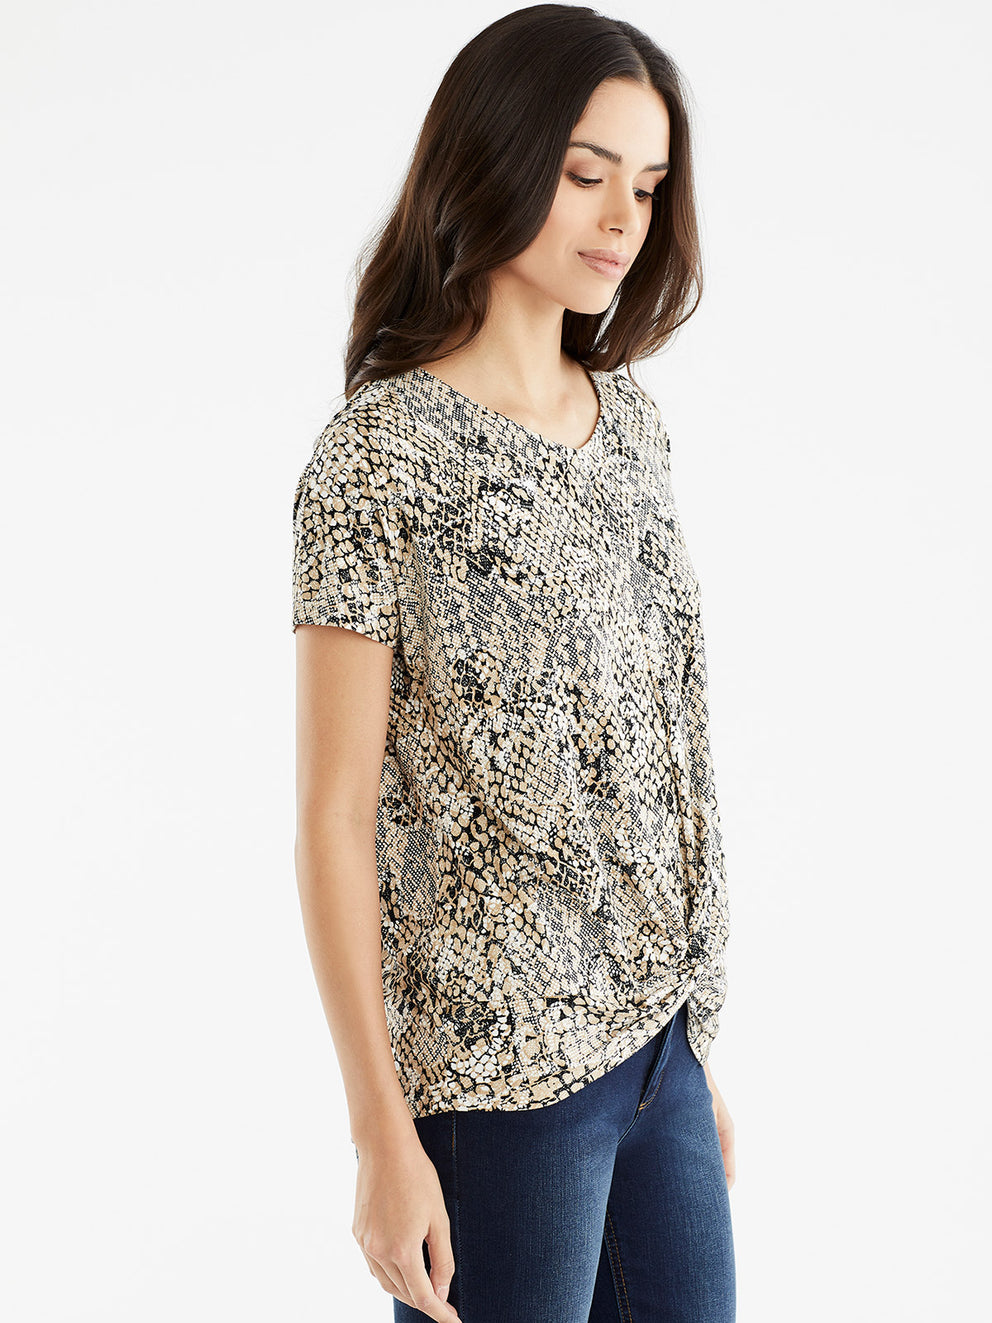 The Jones New York Draped Dolman Sleeve Top in color Beige Snake Combo - Image Position 2